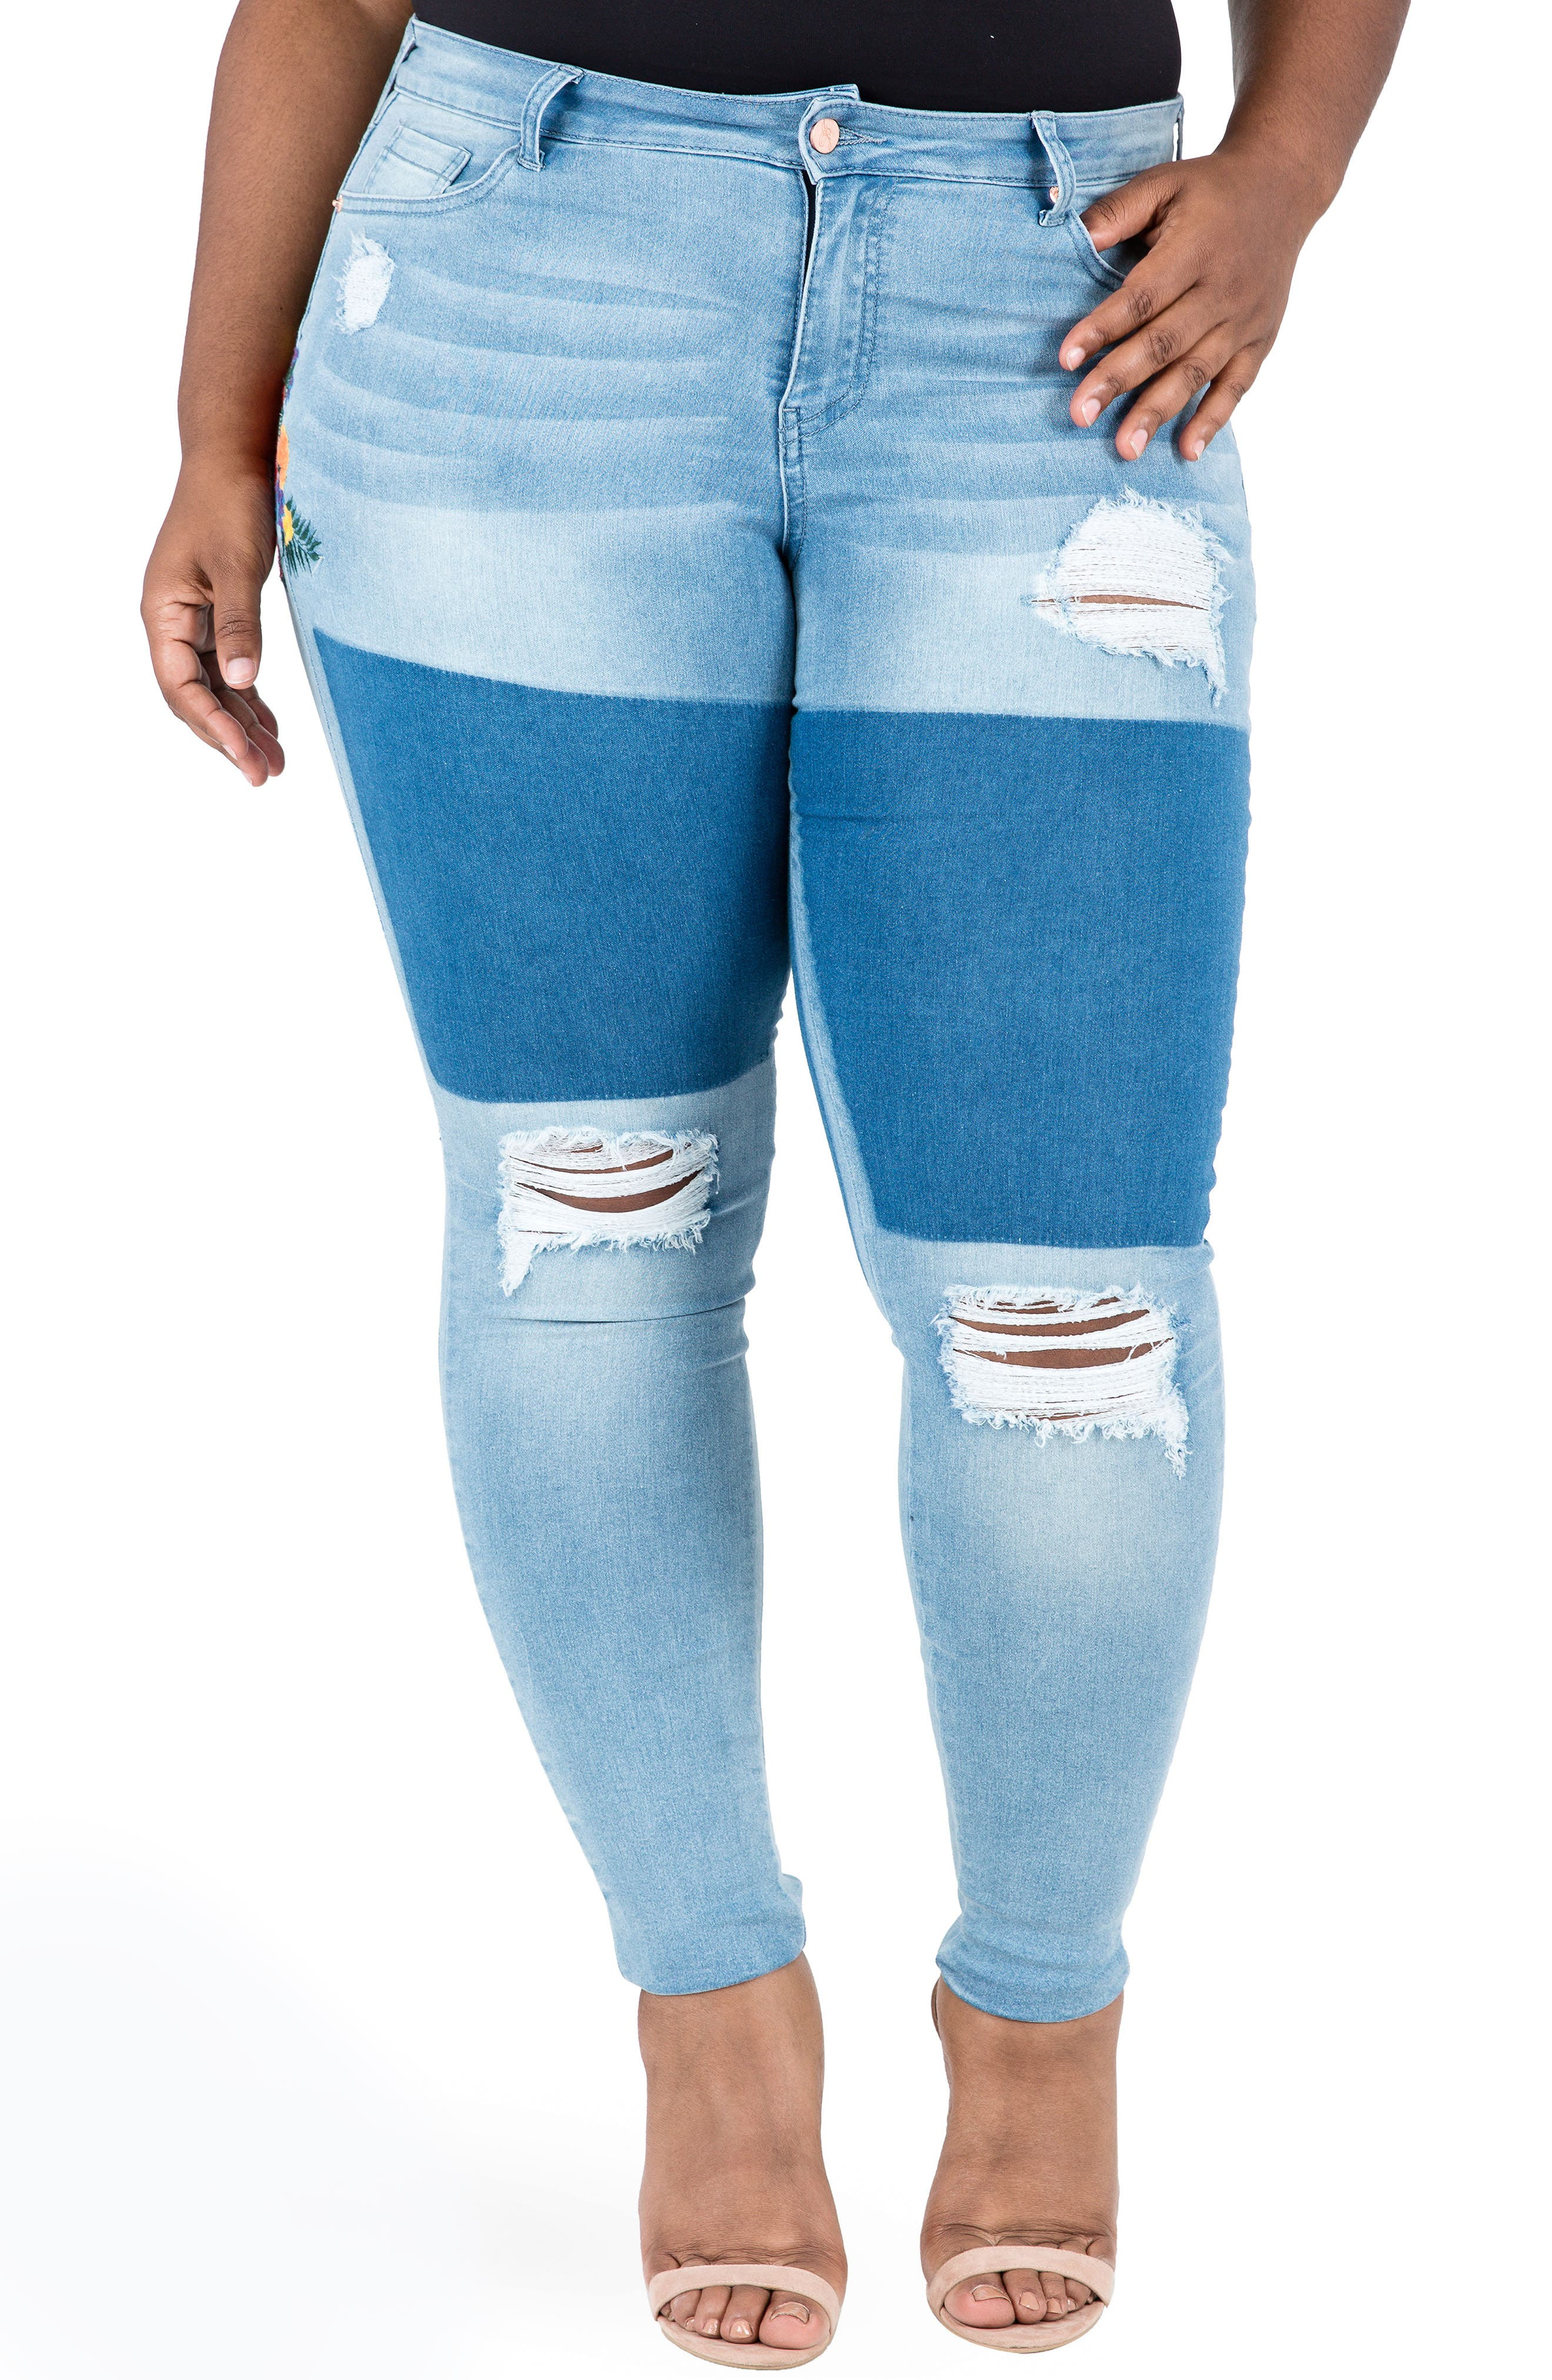 Poetic Justice Madison Ripped & Embroidered Skinny Jeans (Plus Size)